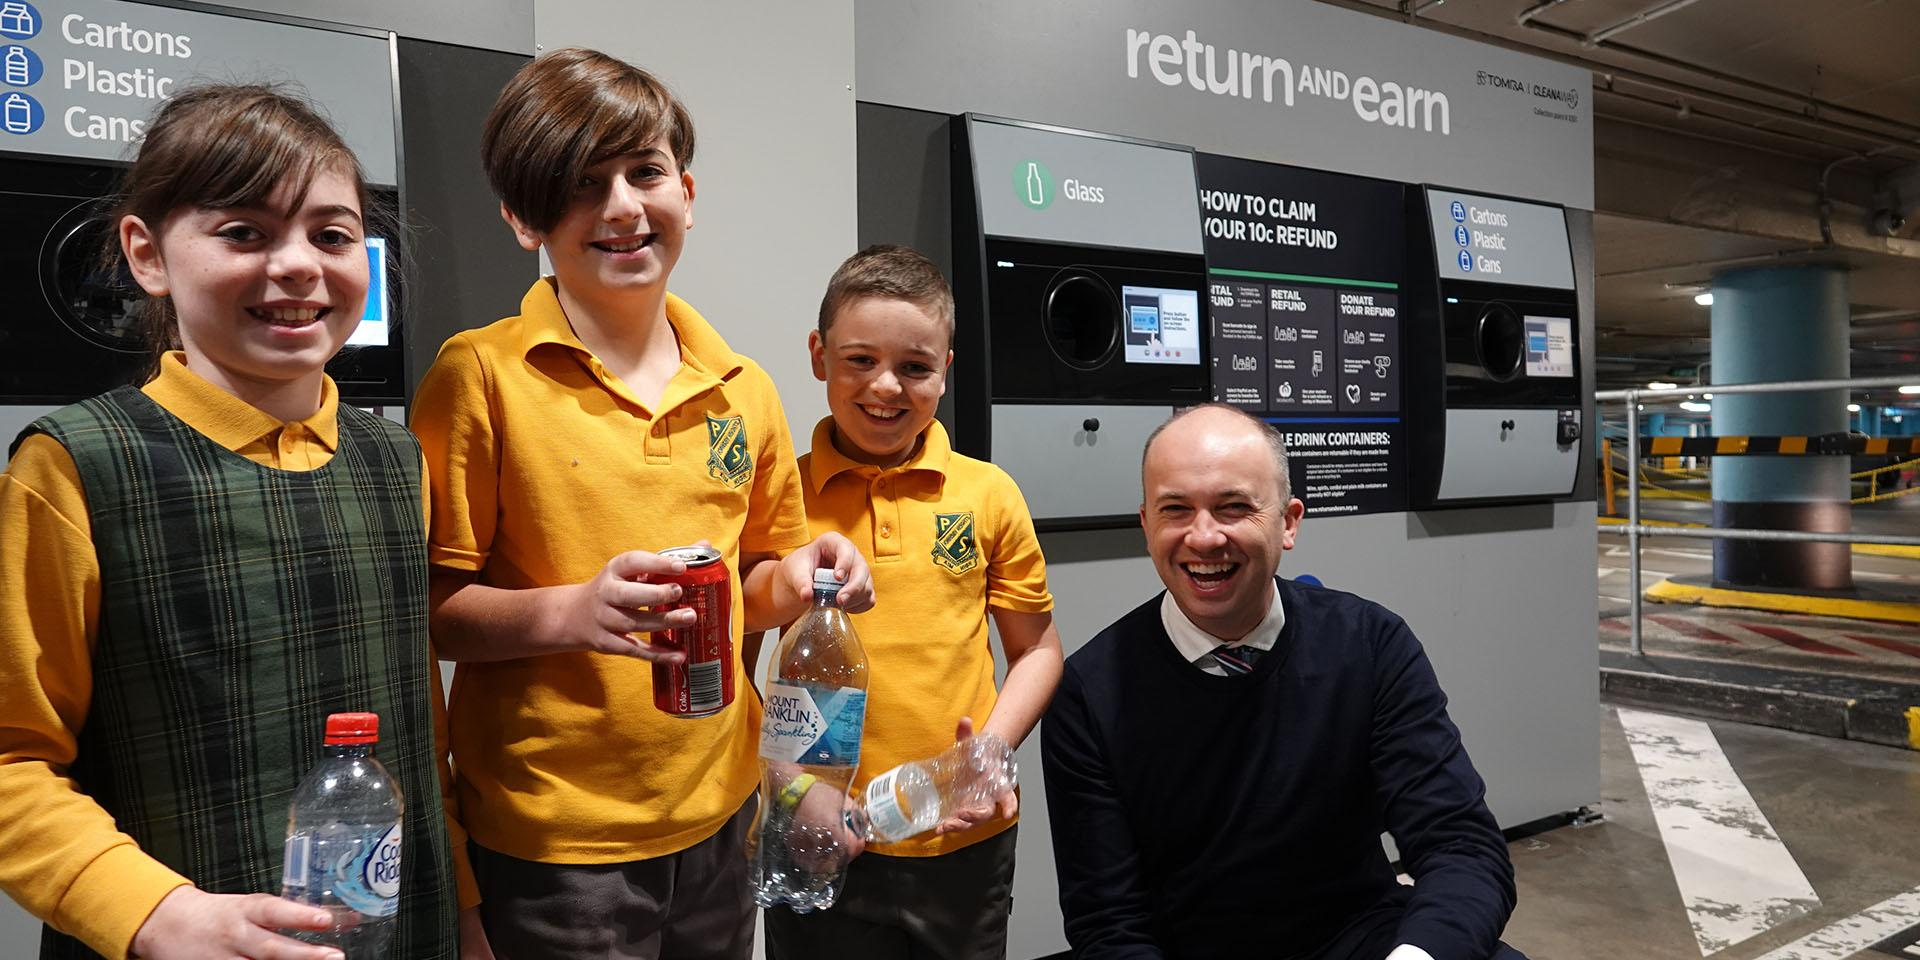 Matt Kean MP with the Gers Family at the opening of Return and Earn